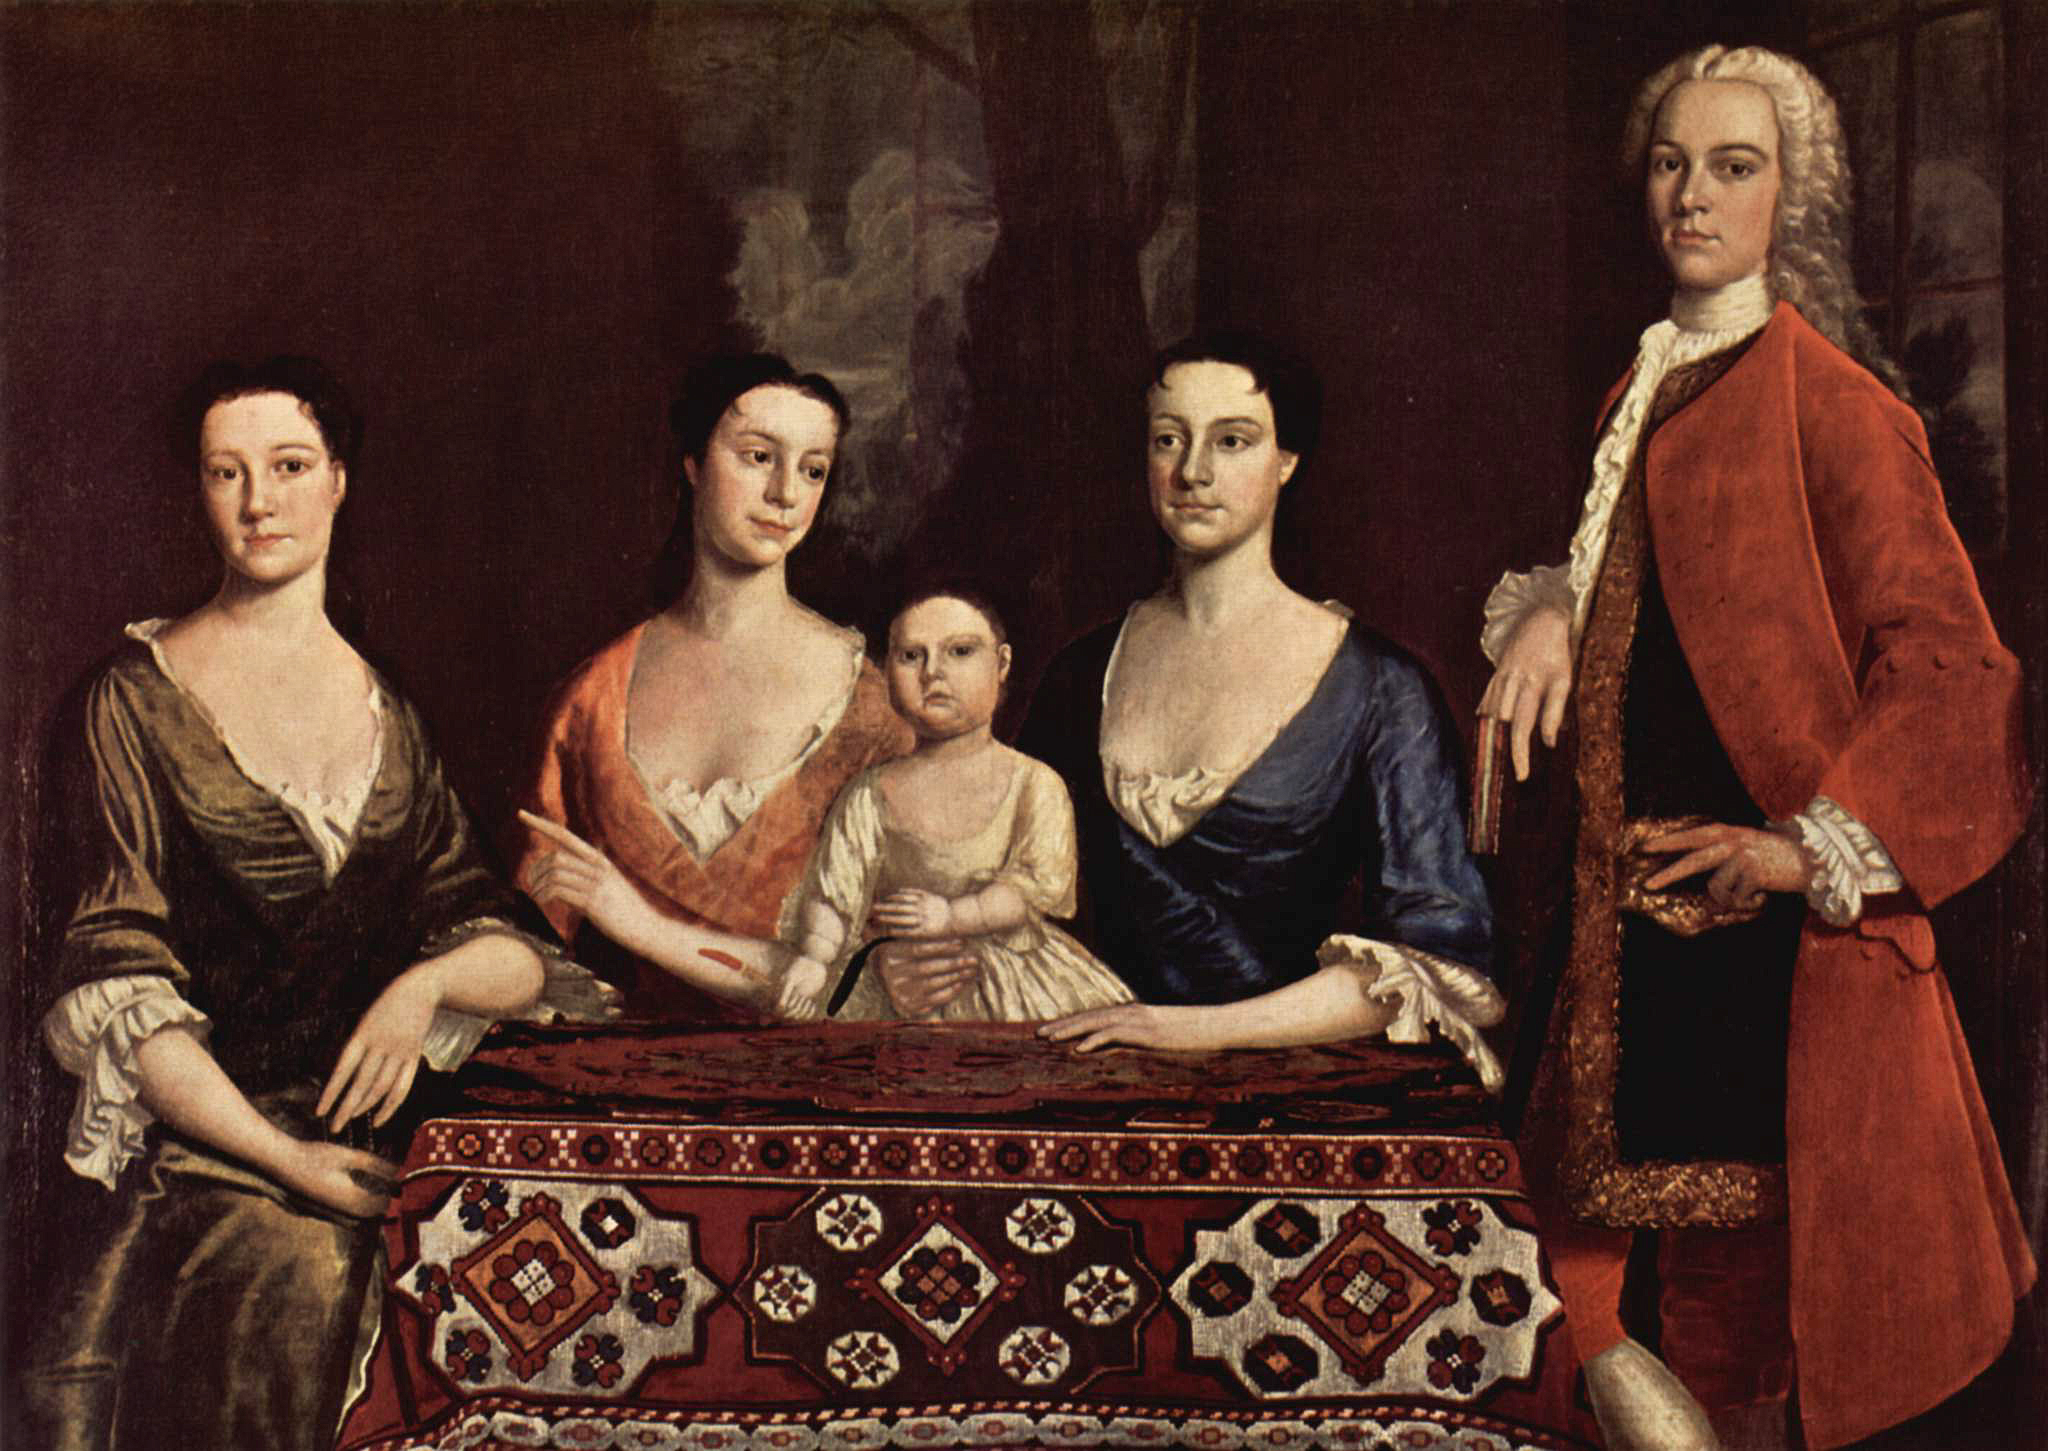 Painting of Isaac Royall, Jr. with his wife and child at his side, and other relatives, by Robert Feke (1741).